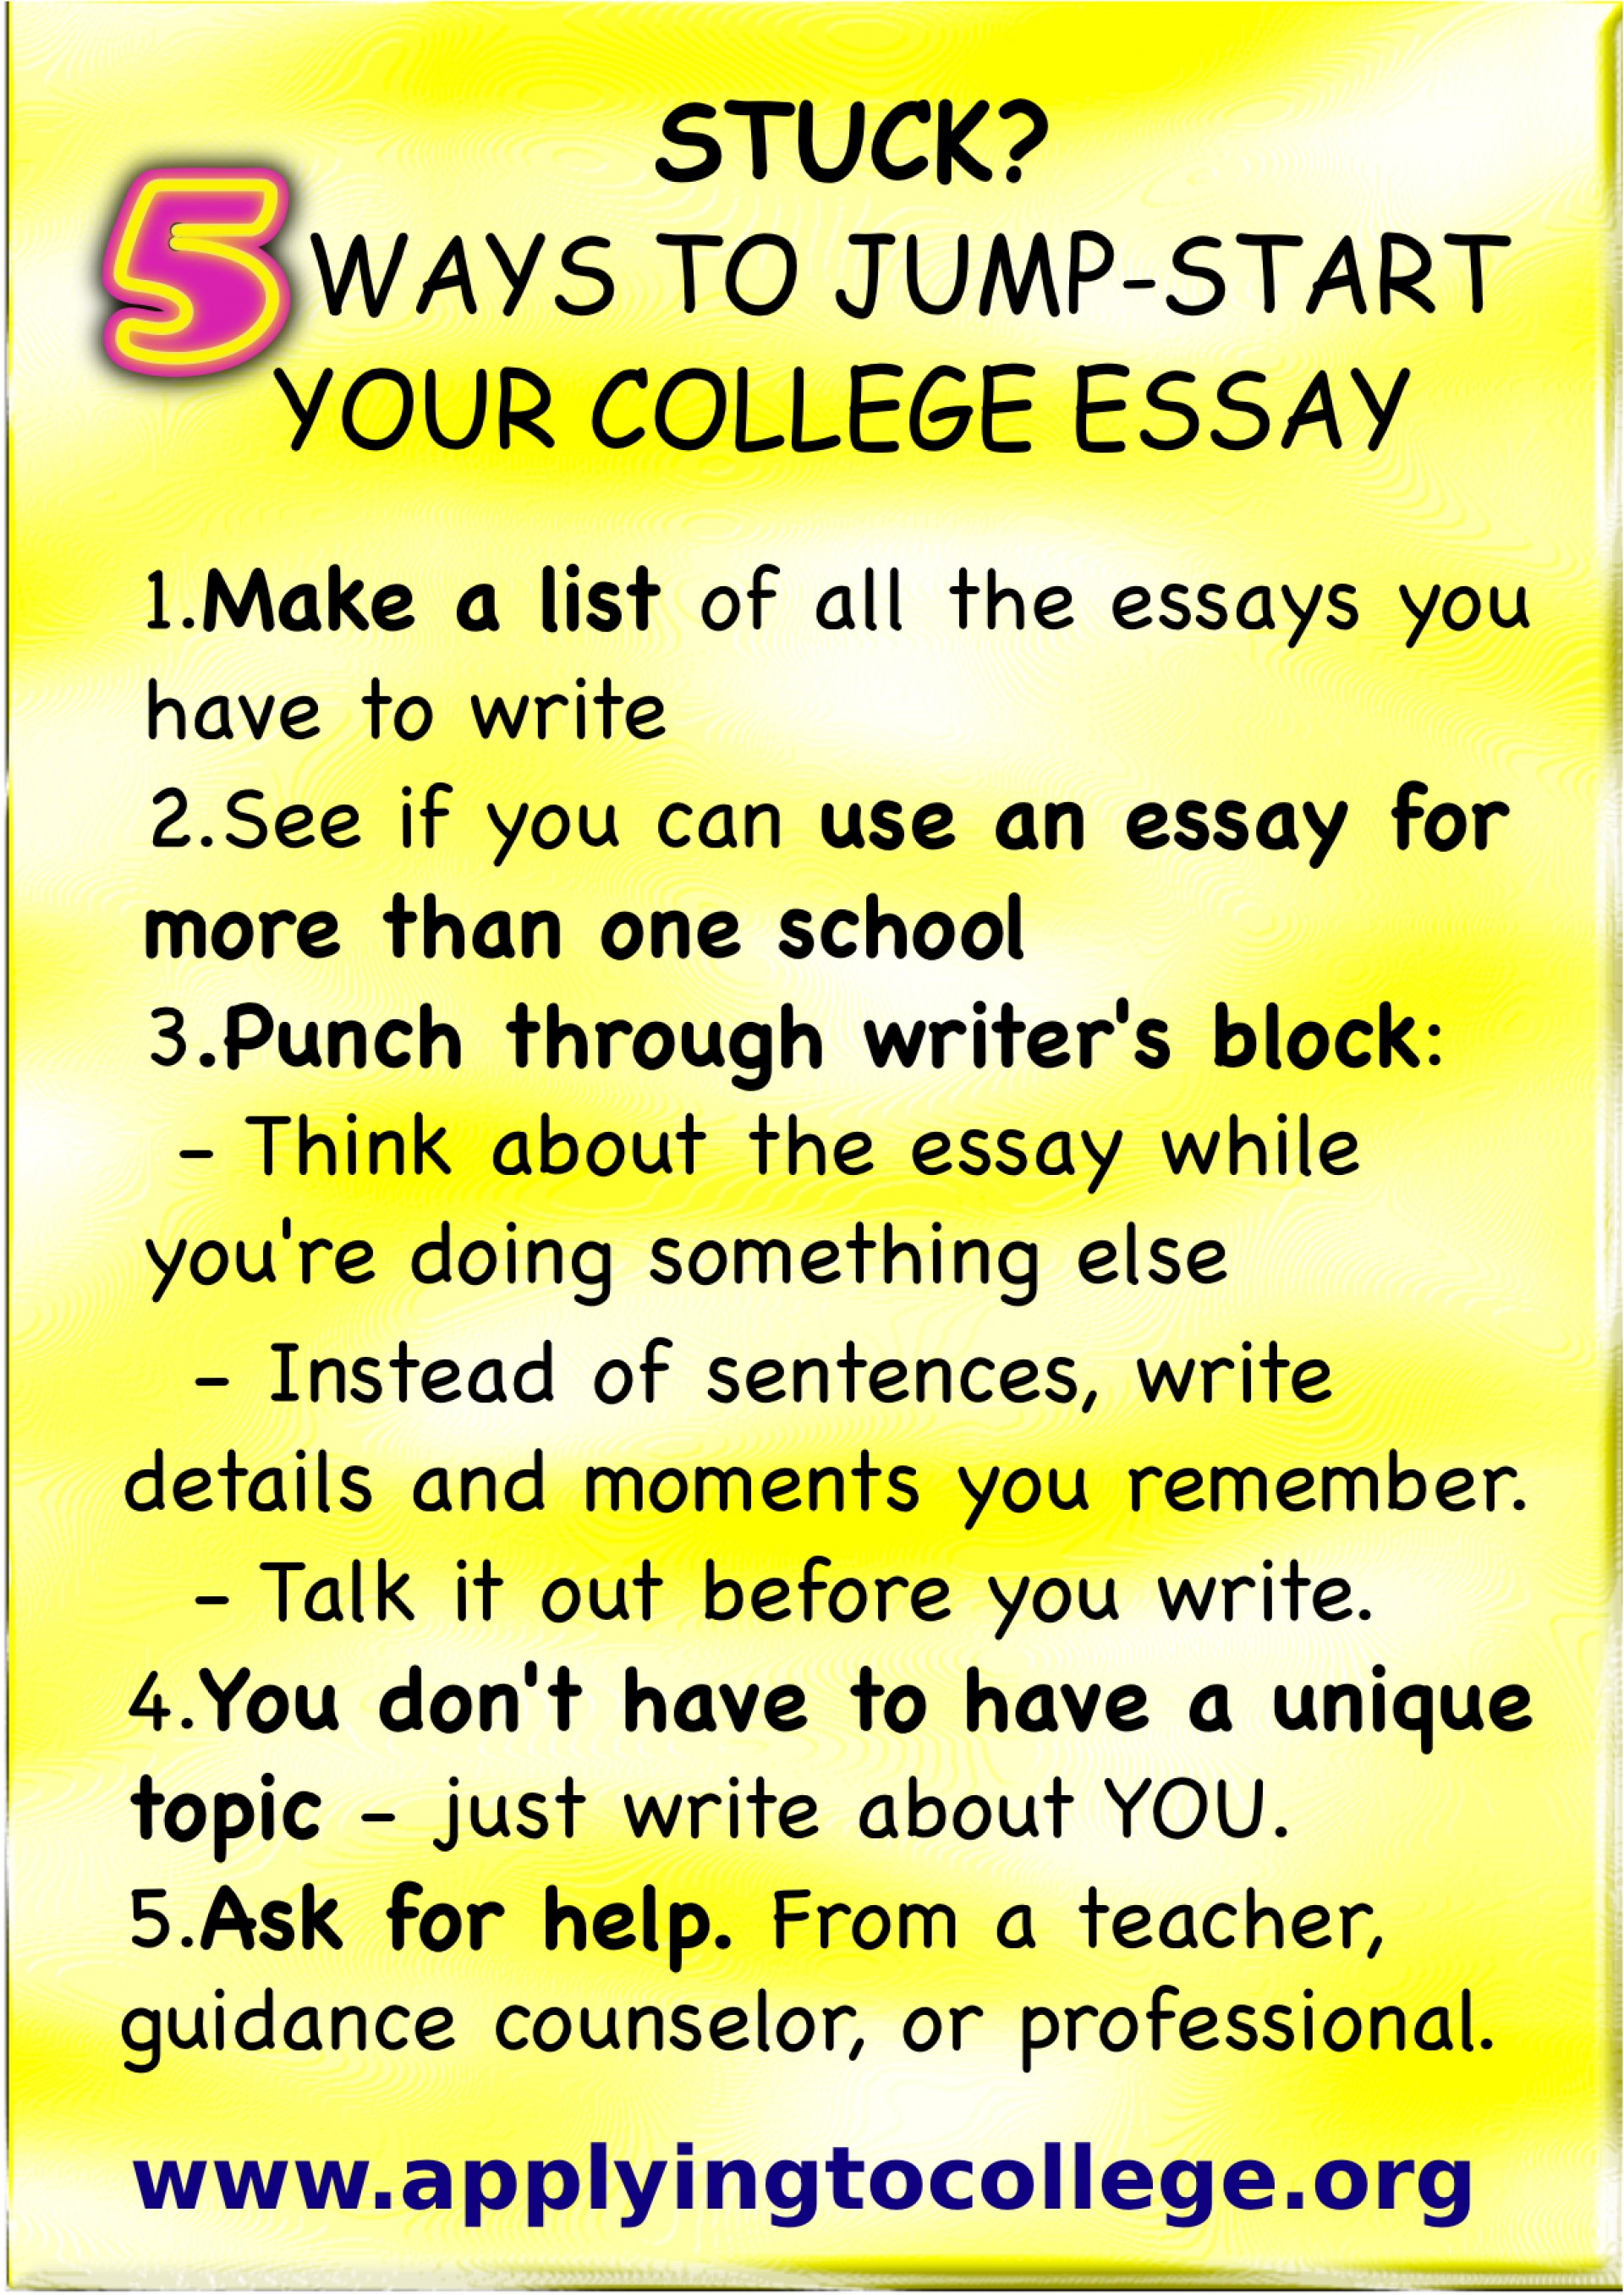 001 Essay Example Ways To Reduce Stress Tips For Writing College Application Fantastic Essays Best 1920